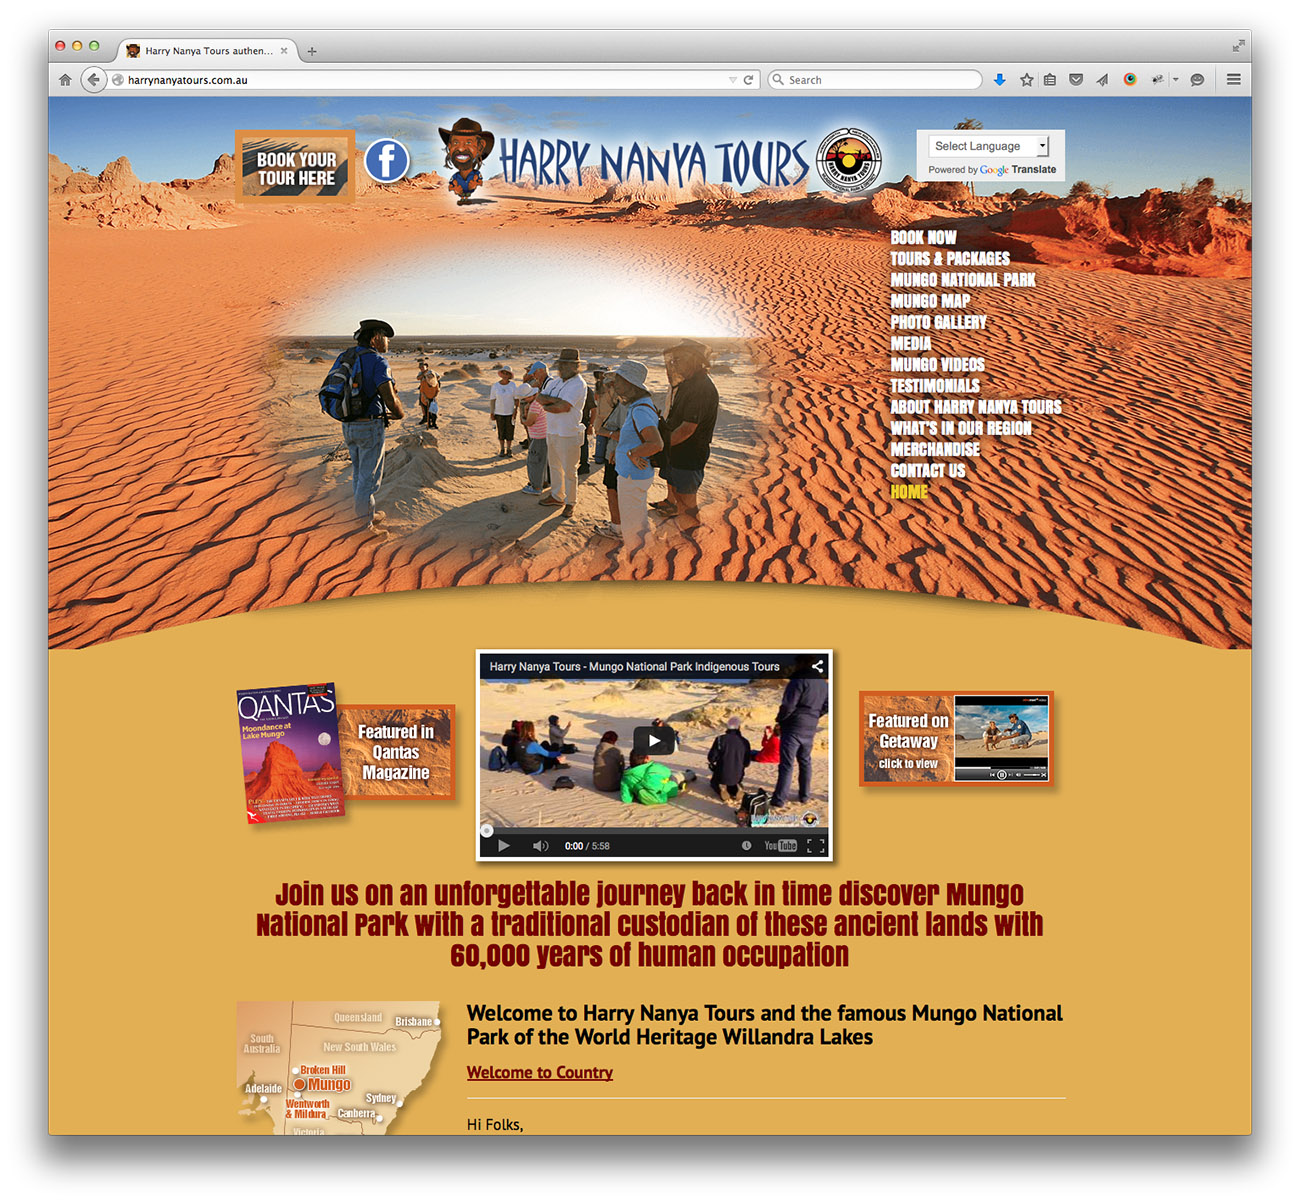 Harry Nanya Tours - Mungo National Park website